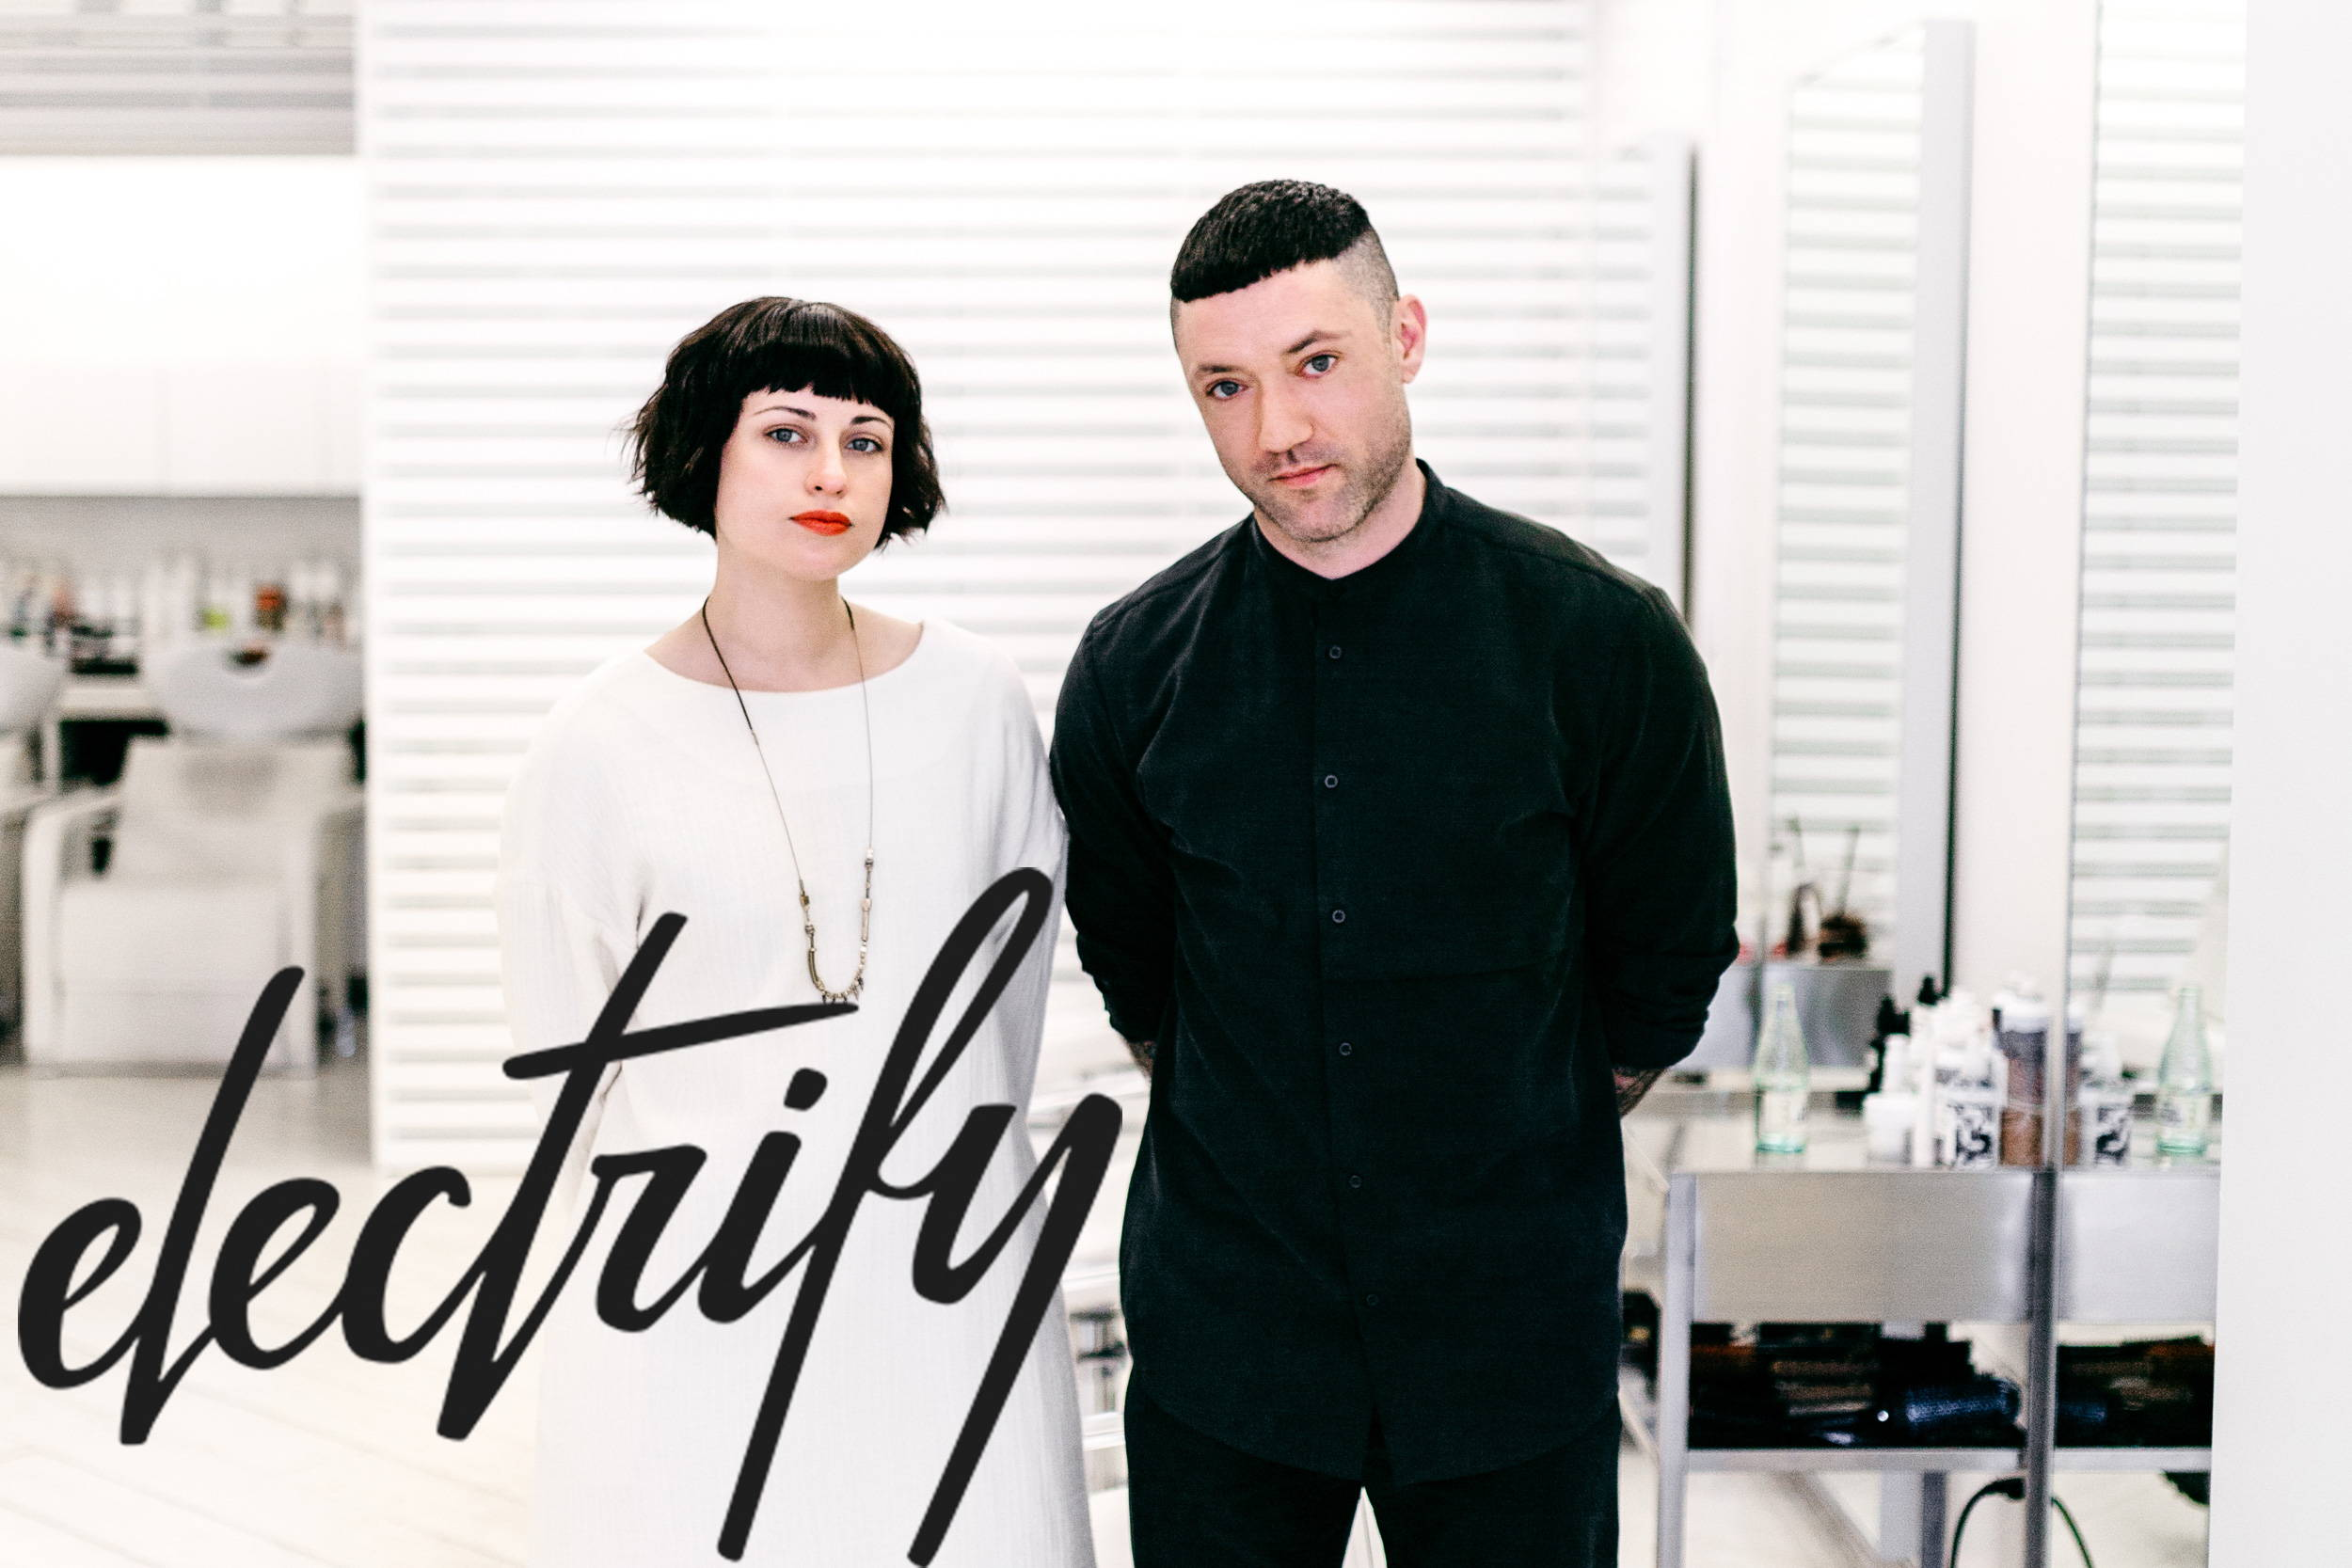 ELECTRIFY MAG | A Minimalist Salon Brings Brooklyn Chic Back to Its Roots